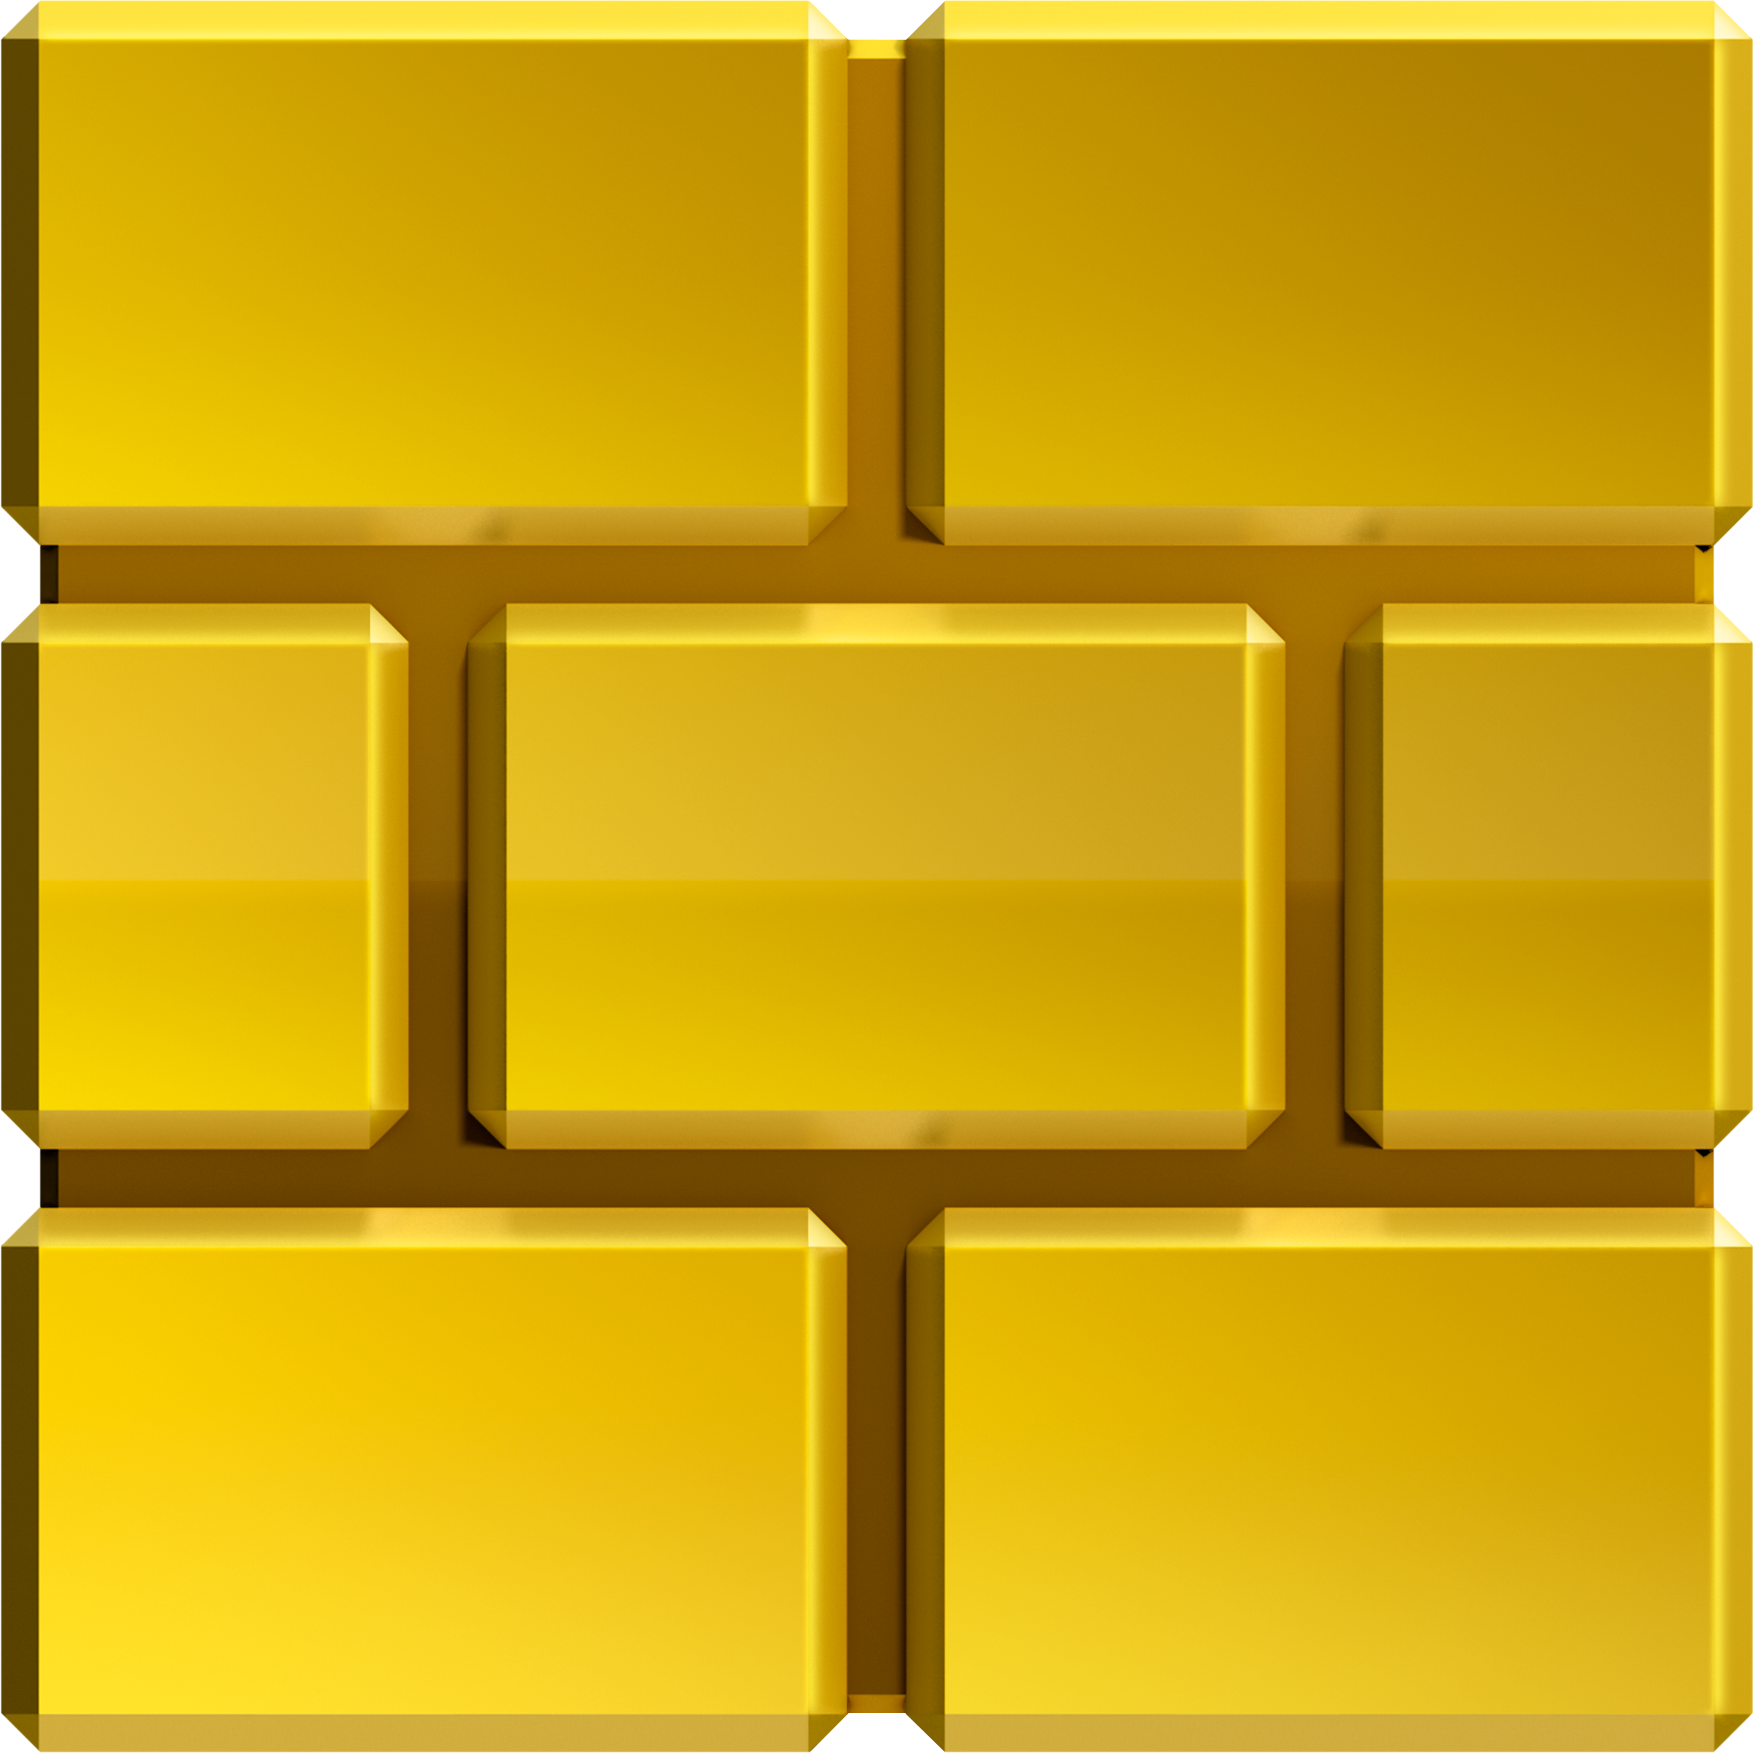 Golden Brick Block